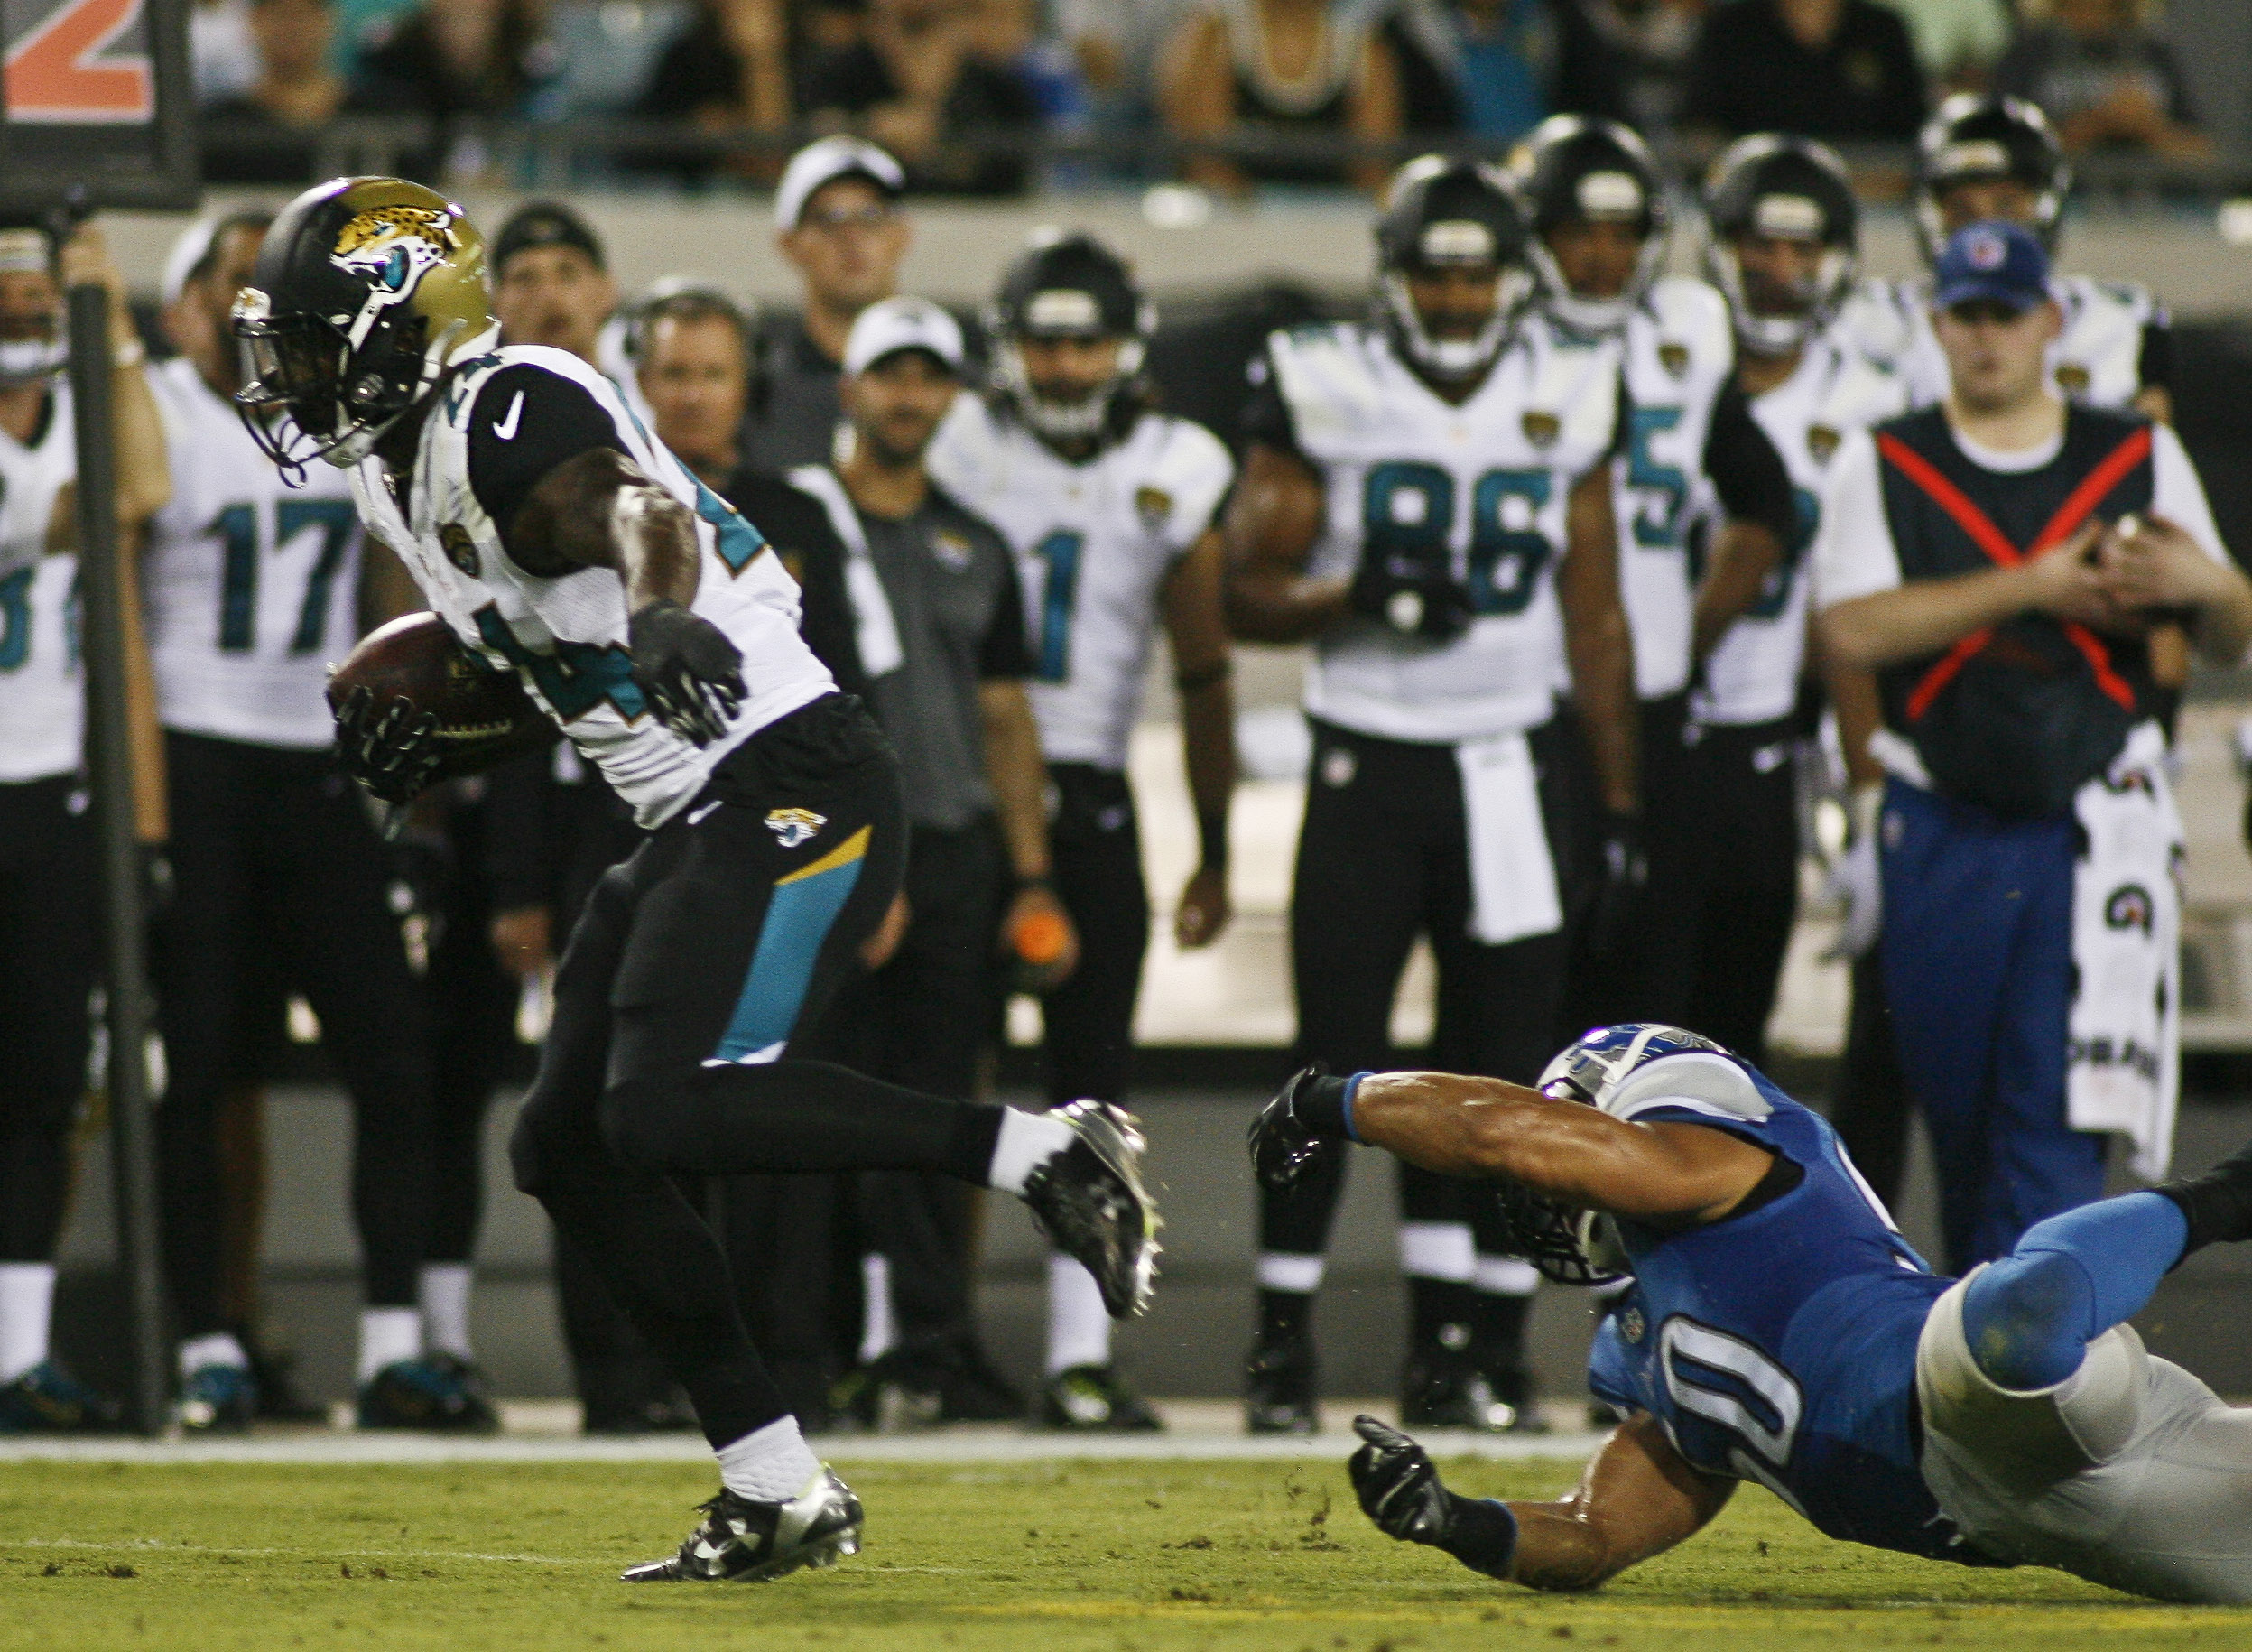 Fantasy football sleepers 2015: T.J. Yeldon in line for plenty of touches